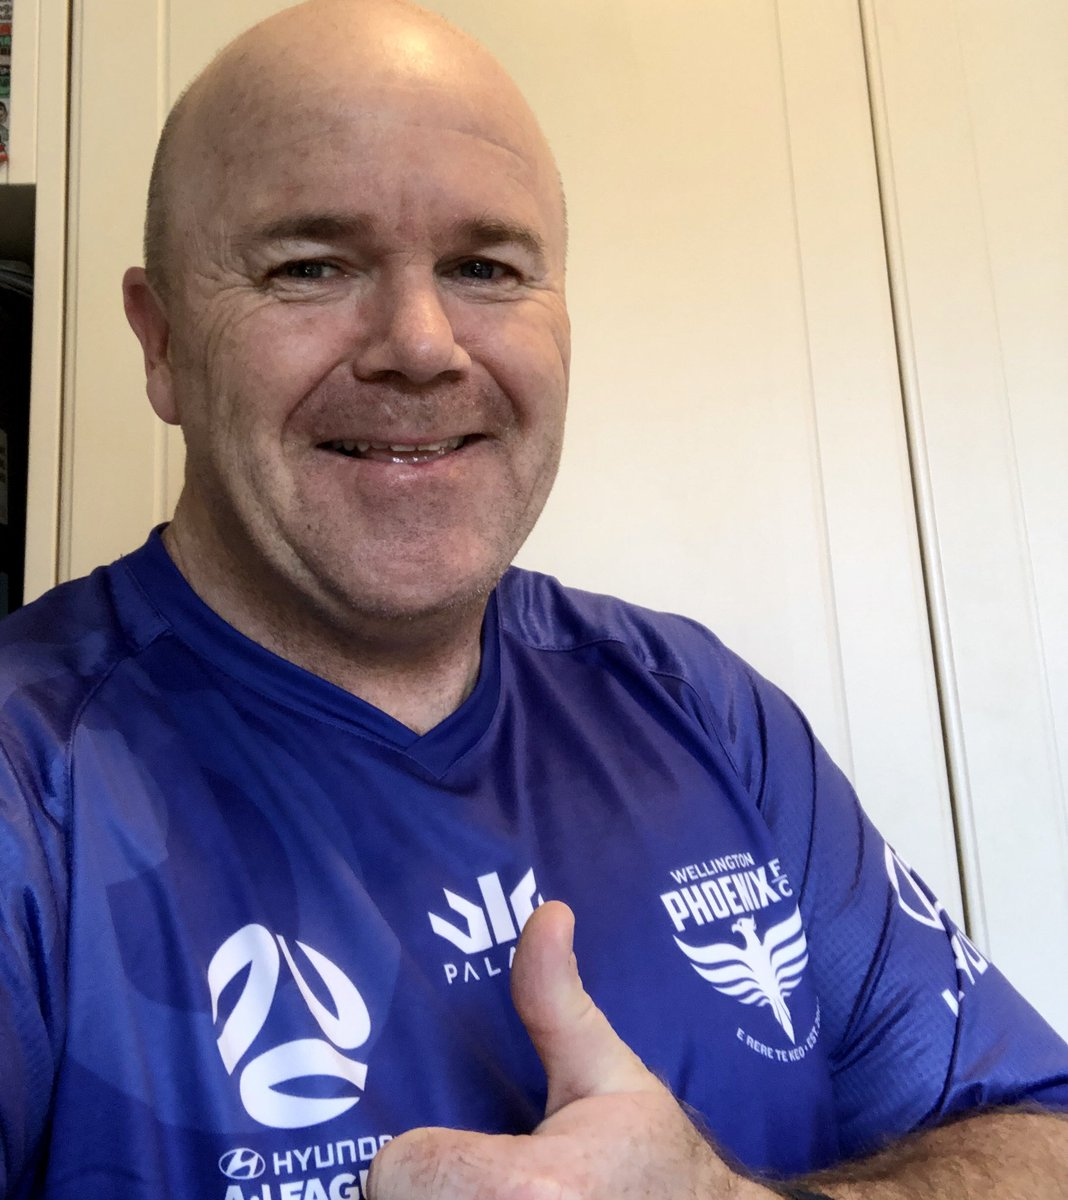 Love it when you get 2  of your favourite things @WgtnPhoenixFC & @mentalhealthnz in 1 ! Great shirt/message - proud 2b  a passionate supporters of both thanks 2 @footycentralnz 4 keeping me updated with the delays they have finally hit Akl #COYN #Mentalhealthmatters 💛🖤💜💛🖤💜 https://t.co/BjMkiUyrCu